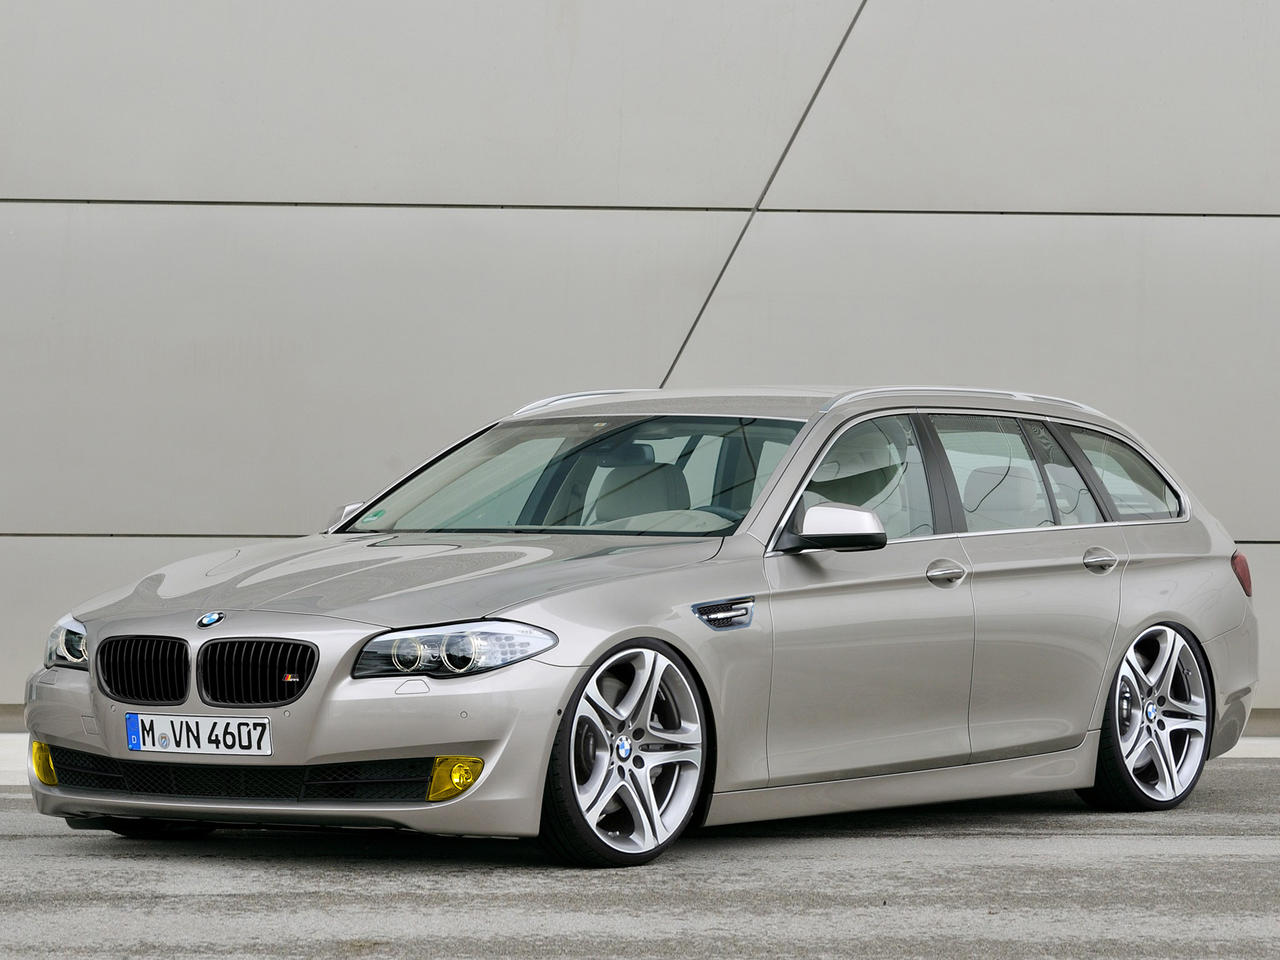 bmw 520d touring by jgggdesign on deviantart. Black Bedroom Furniture Sets. Home Design Ideas